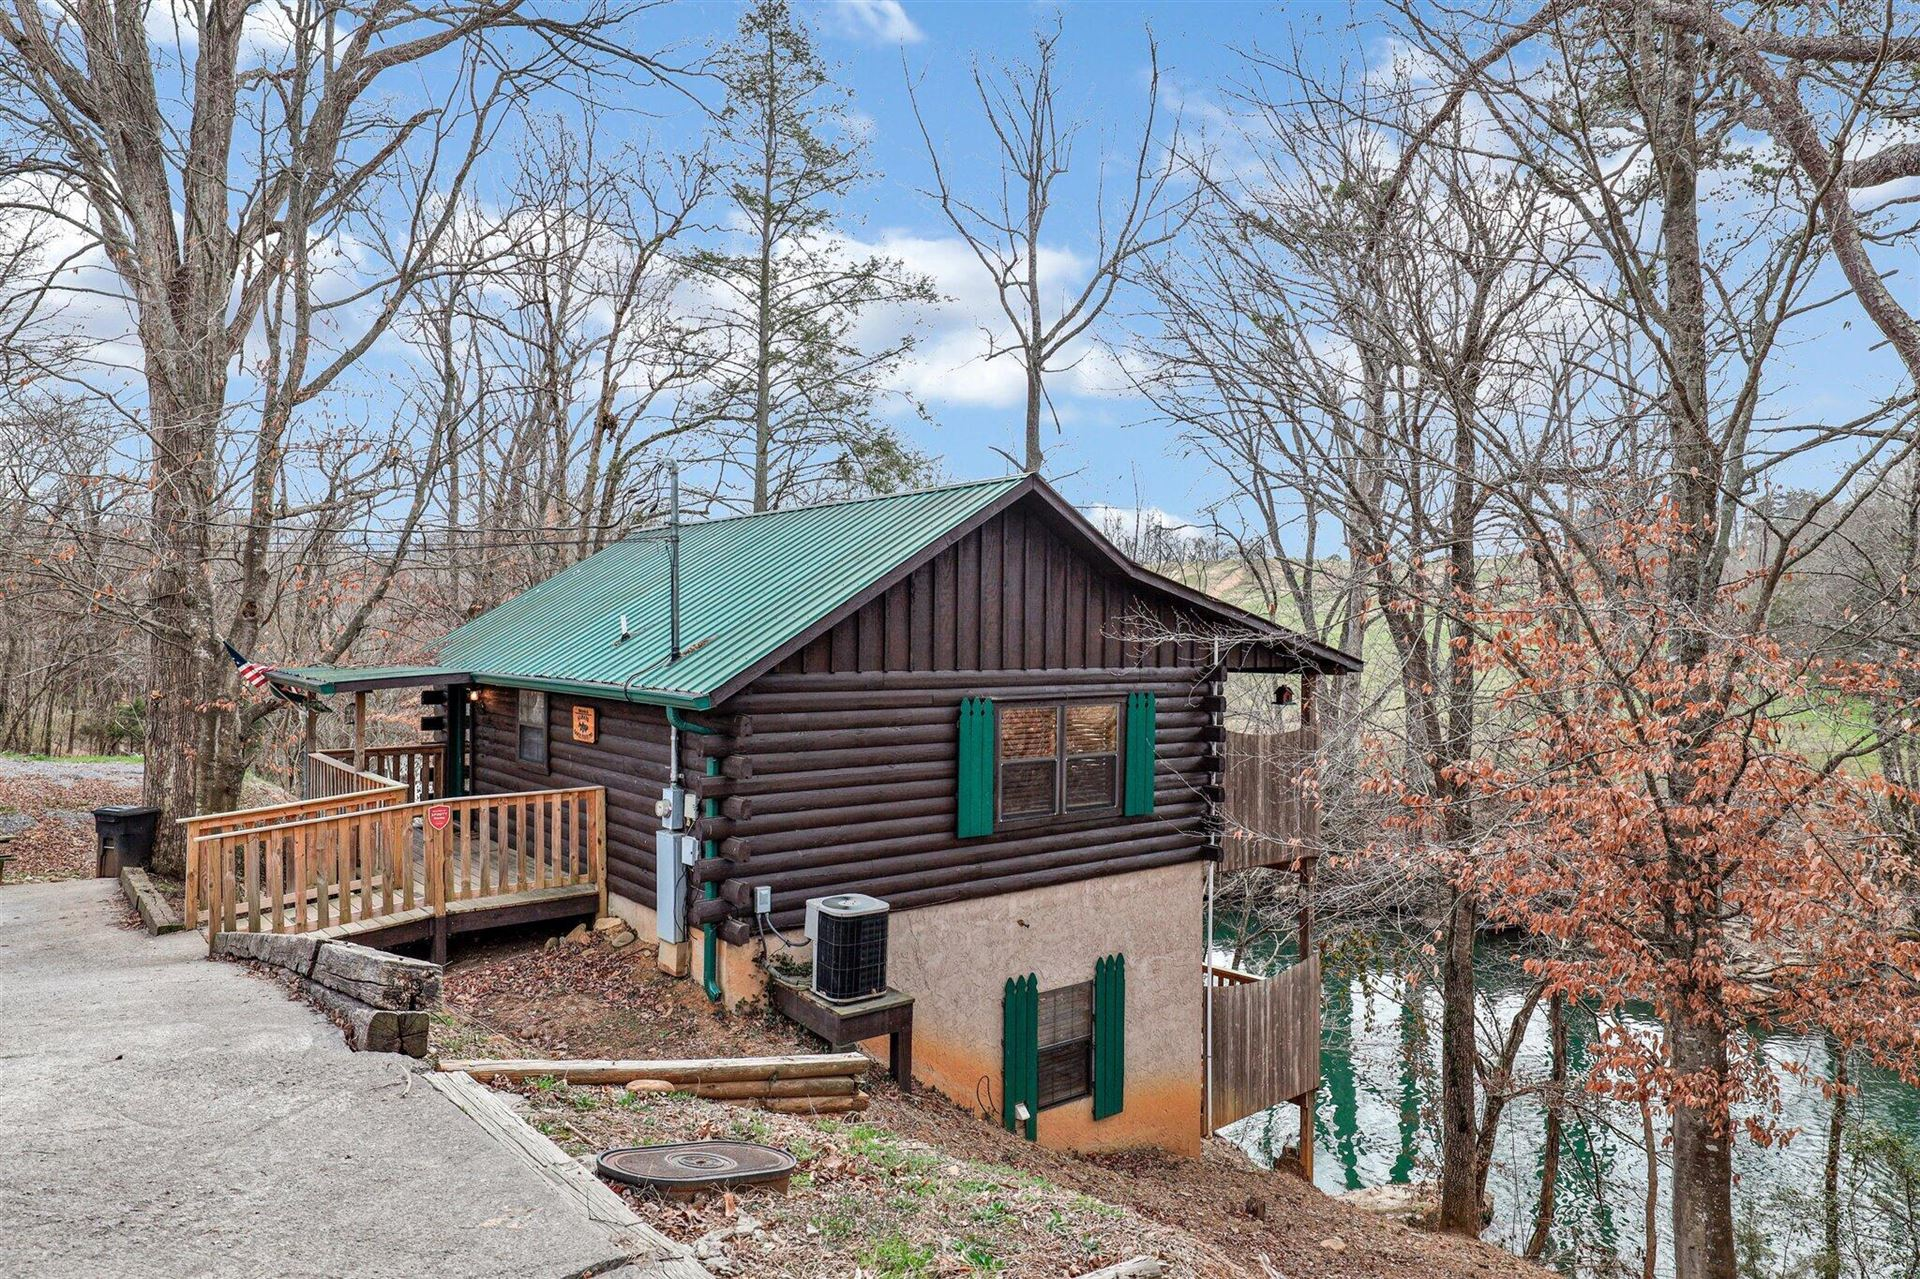 Photo of 1890 Pittman Center Rd #3, Sevierville, TN 37876 (MLS # 1140654)